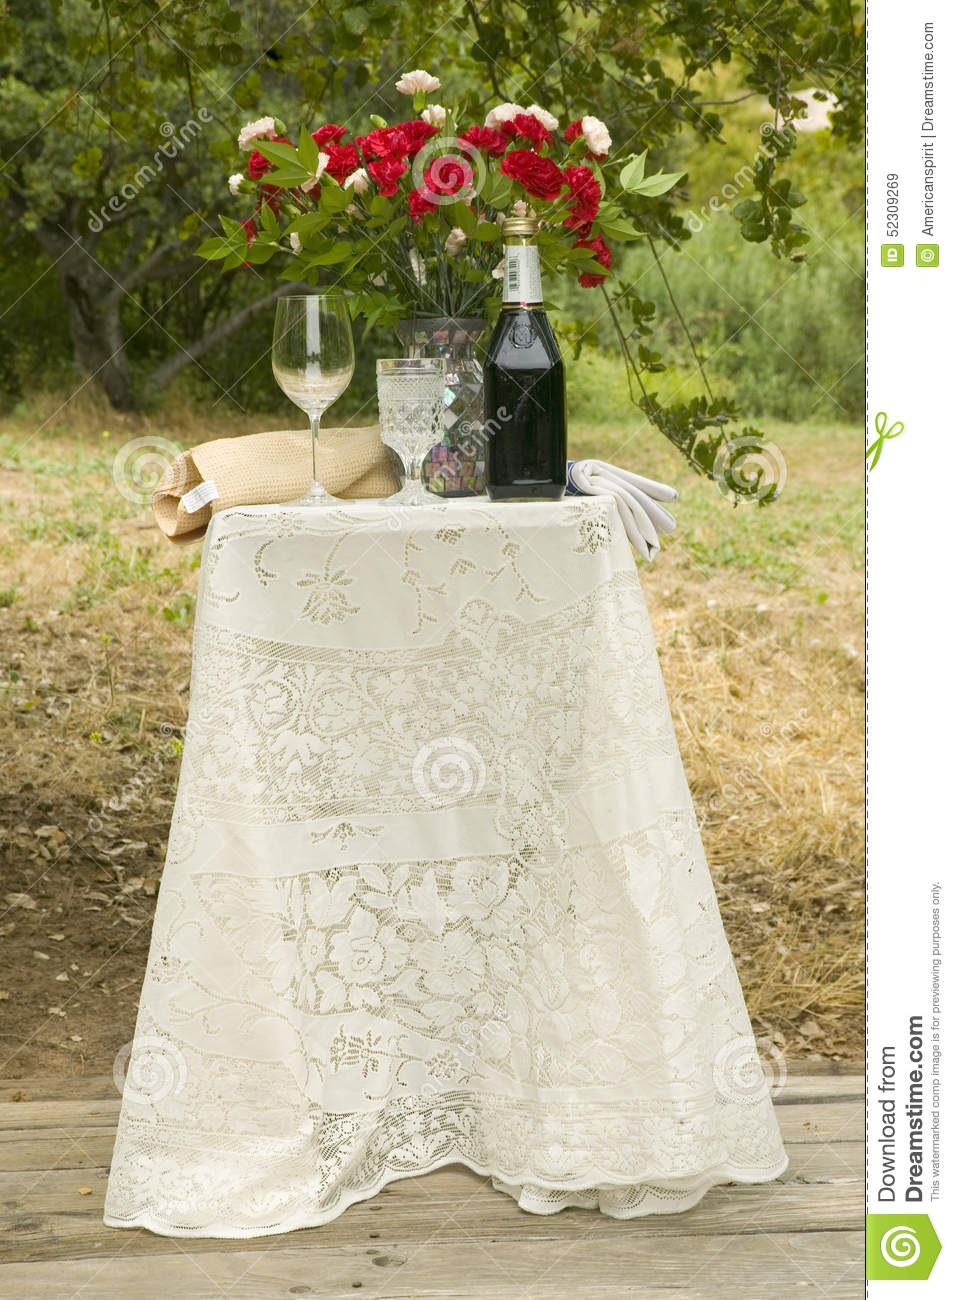 Decorated Table With Bottle Of Red Wine Glasses And